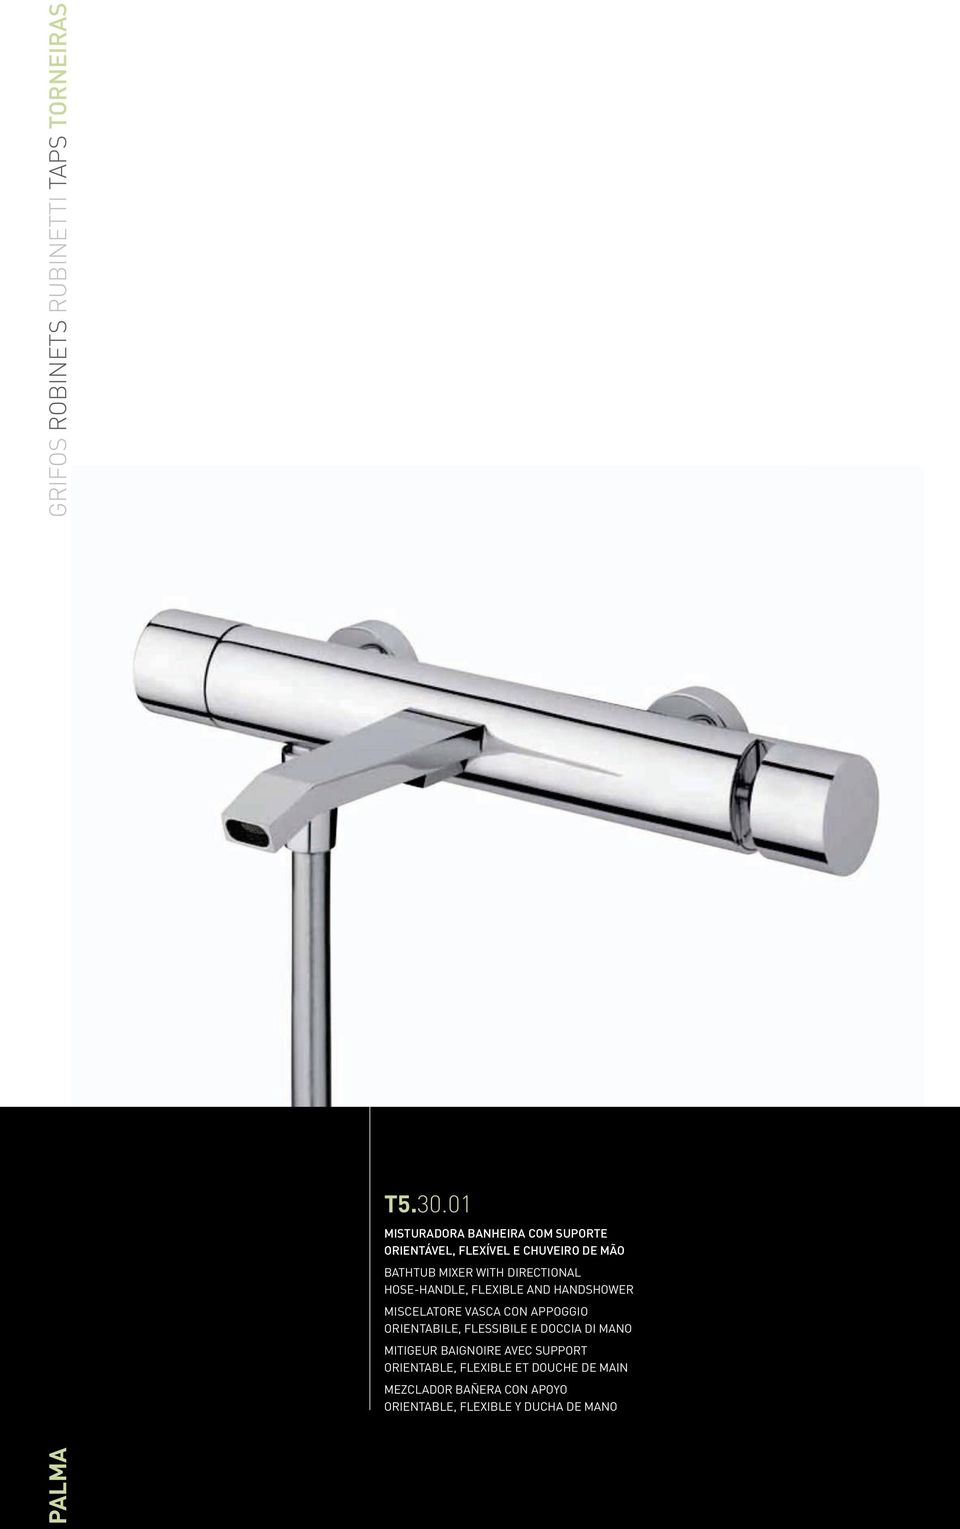 DIRECTIONAL HOSE-HANDLE, FLEXIBLE AND HANDSHOWER MISCELATORE VASCA CON APPOGGIO ORIENTABILE,